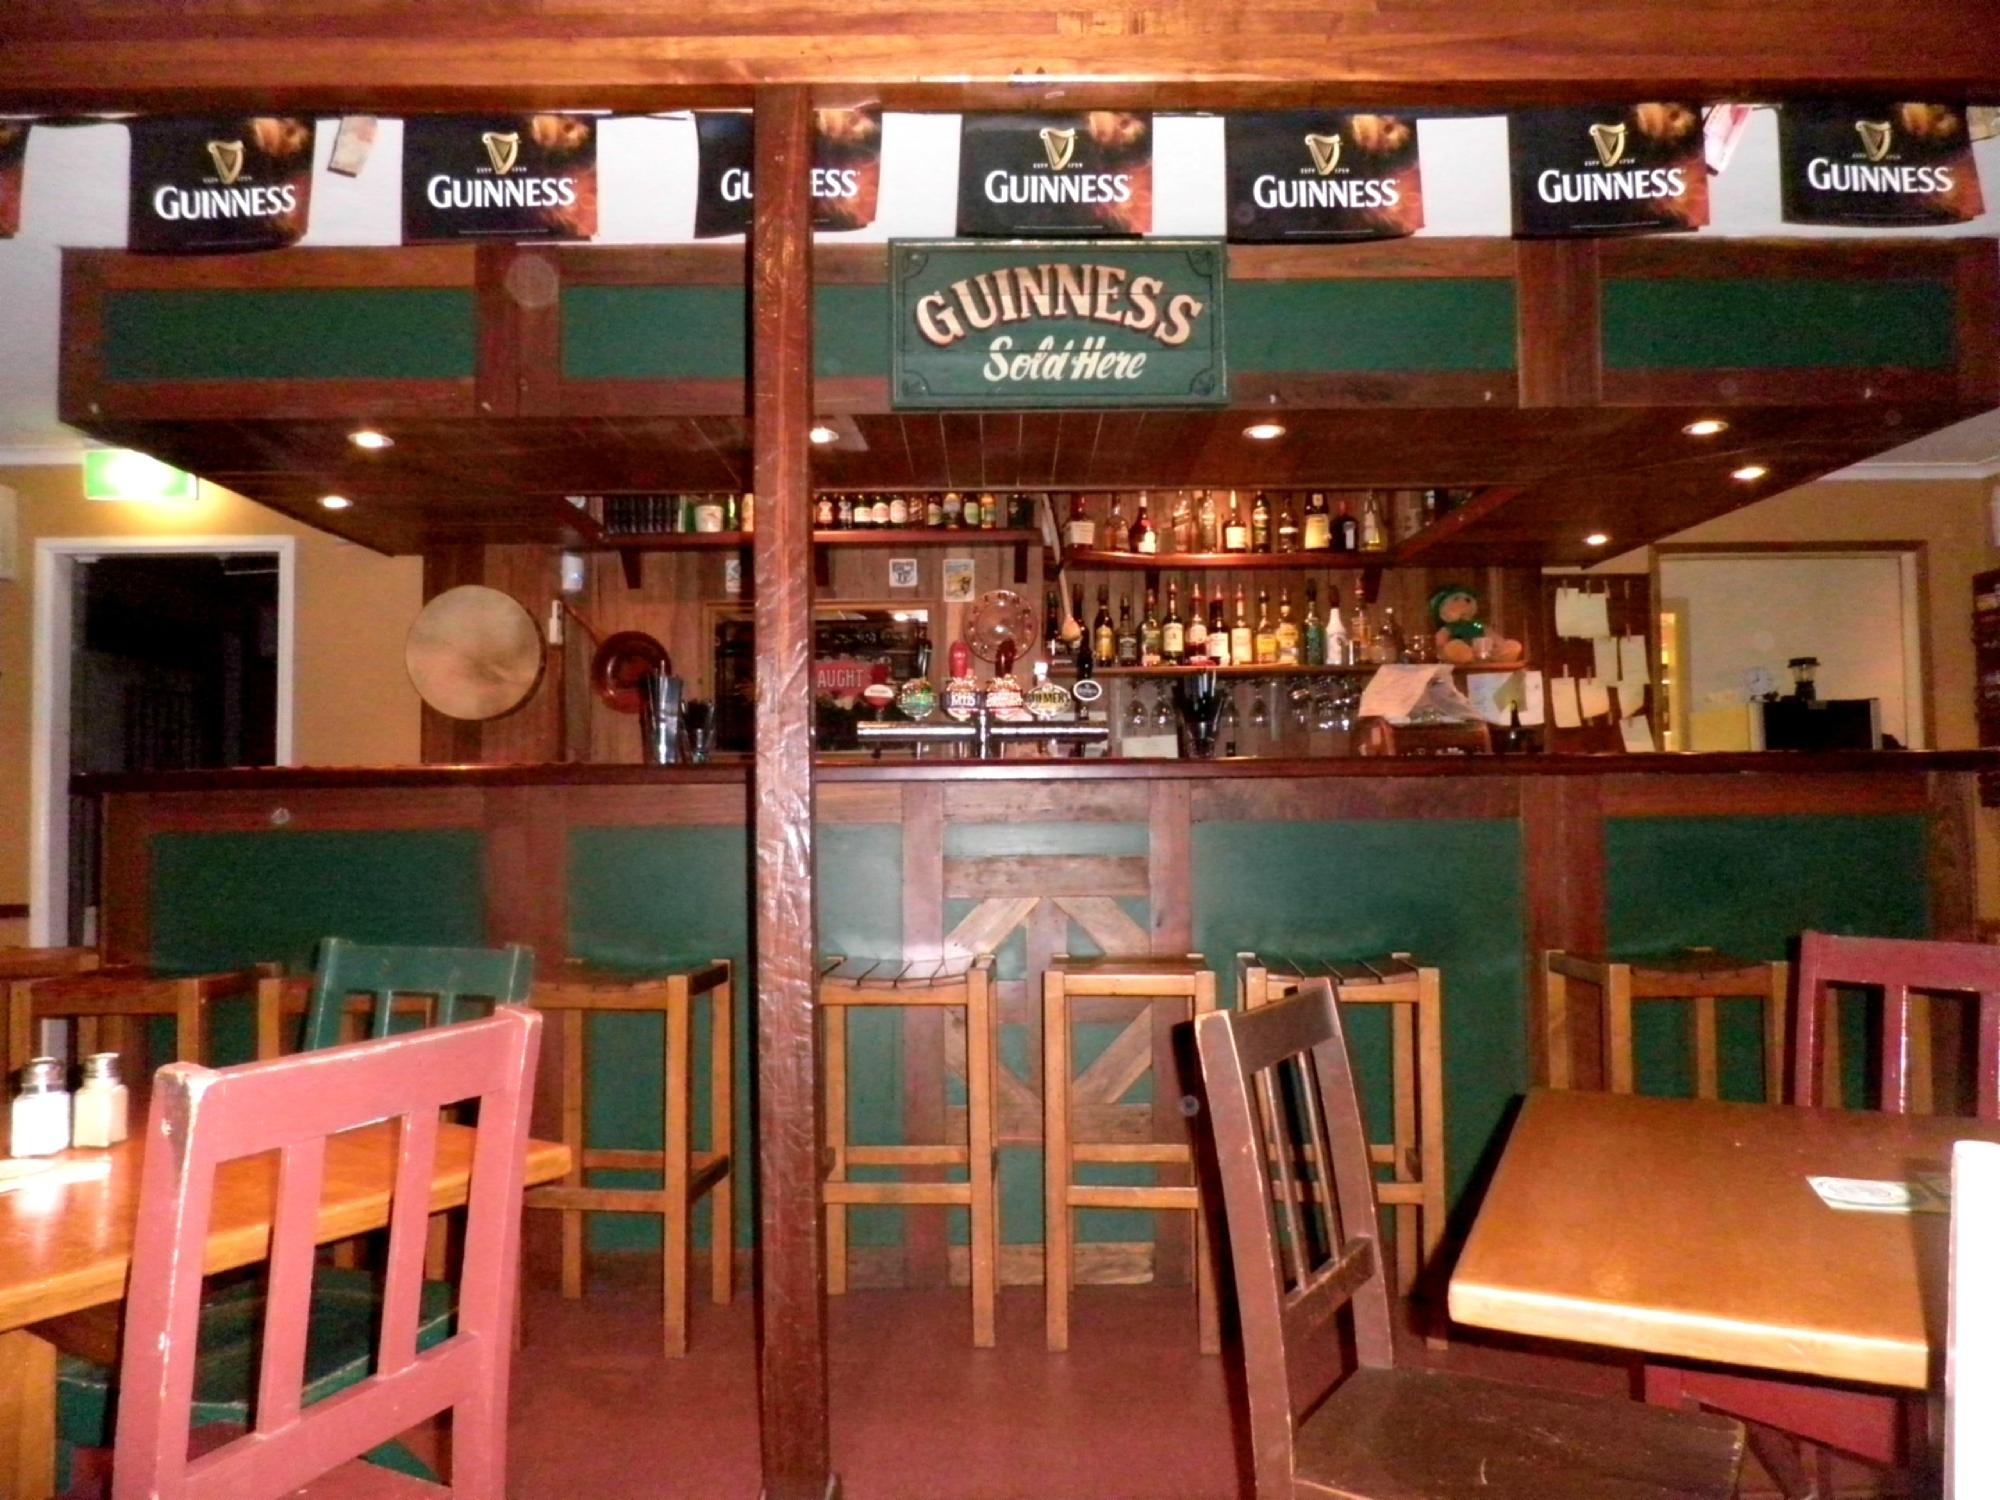 Clancys Irish Bar & Restaurant | 2 Main Street, North Tamborine, Queensland 4272 | +61 7 5545 1531